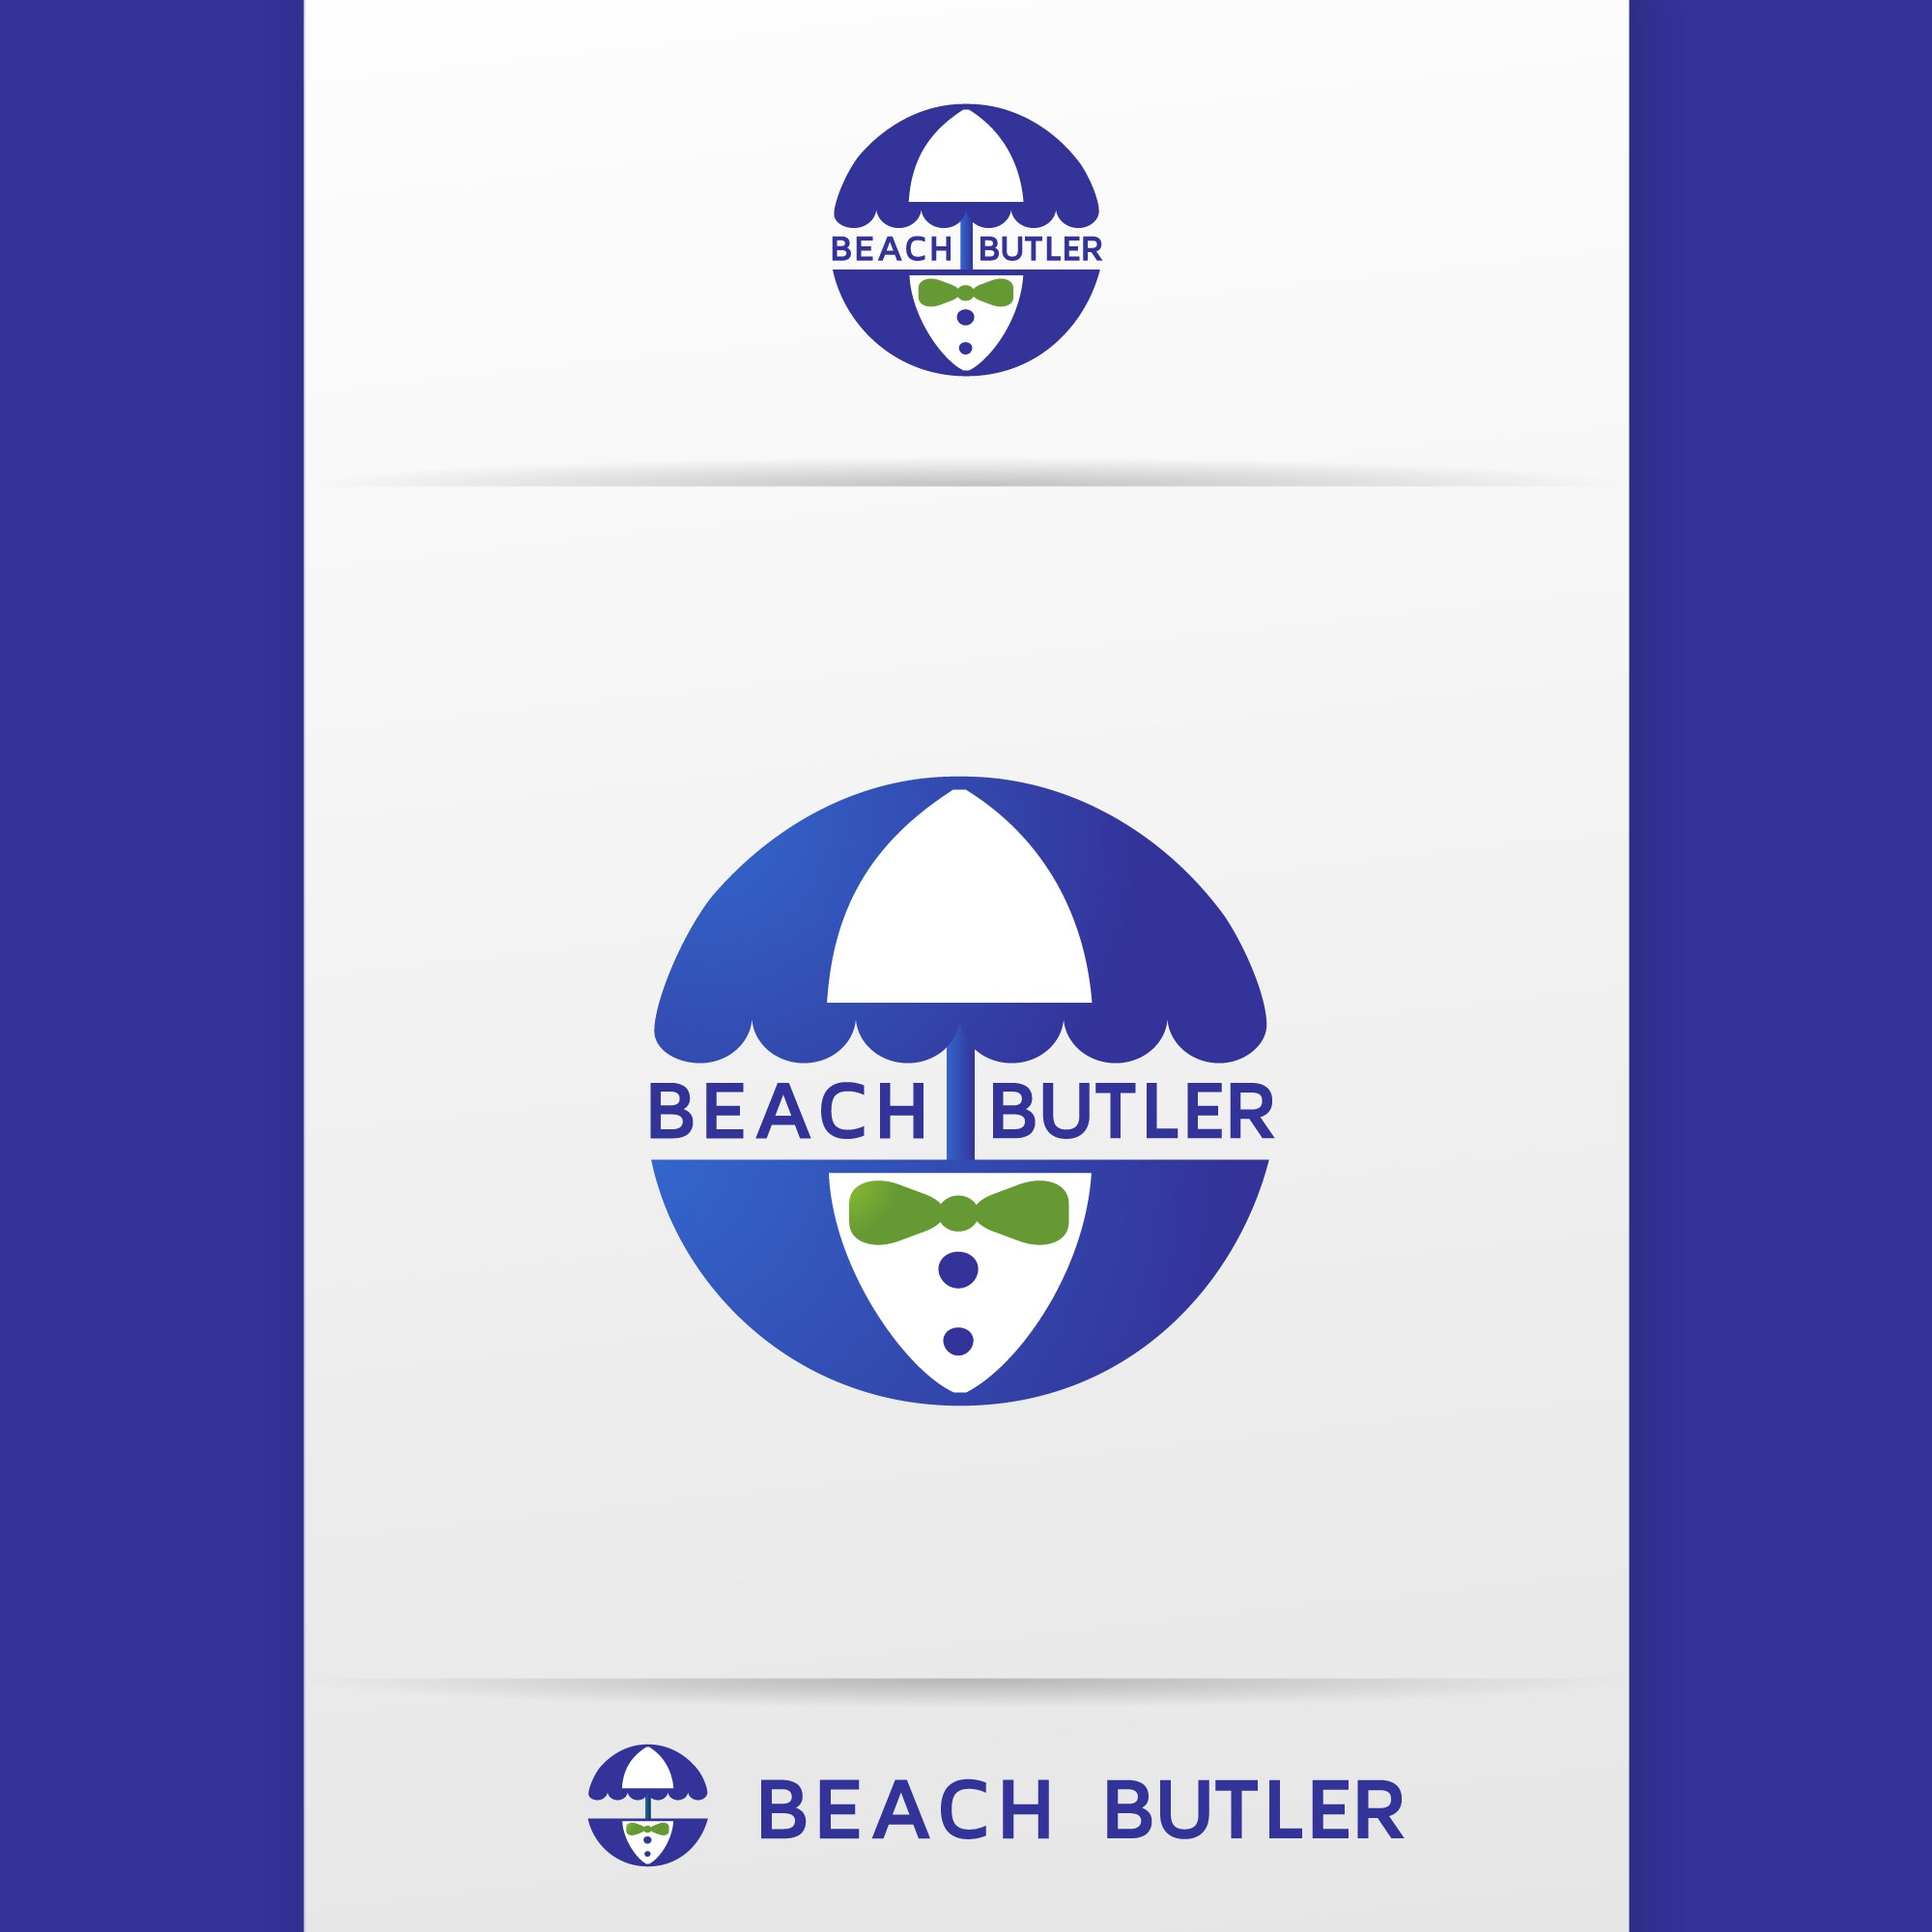 """GPS mobile app company """"Beach Butler"""" catering to Miami beach goers blending hip, luxury, relaxation"""